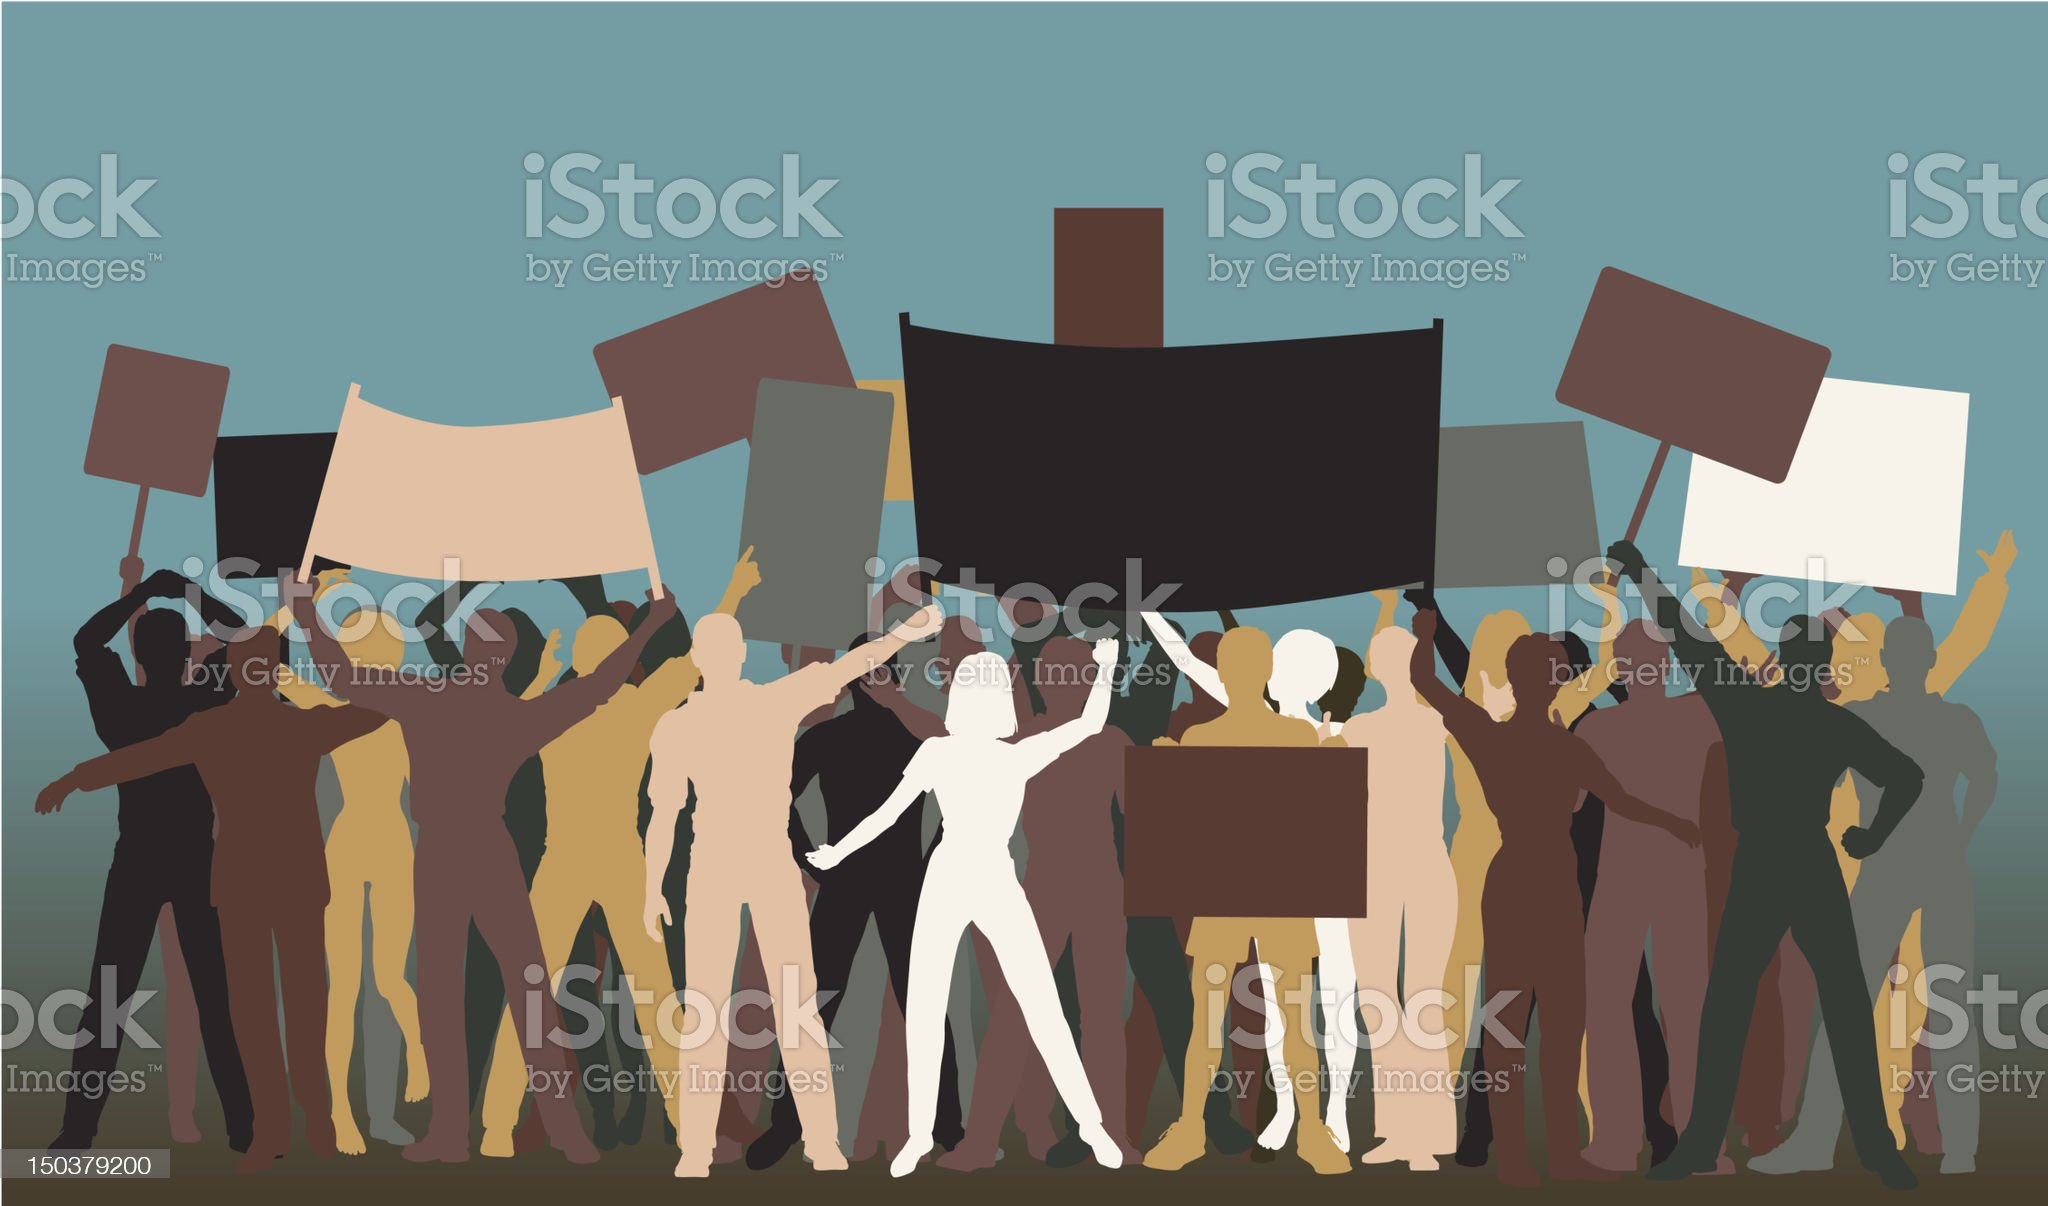 Protest group royalty-free stock vector art